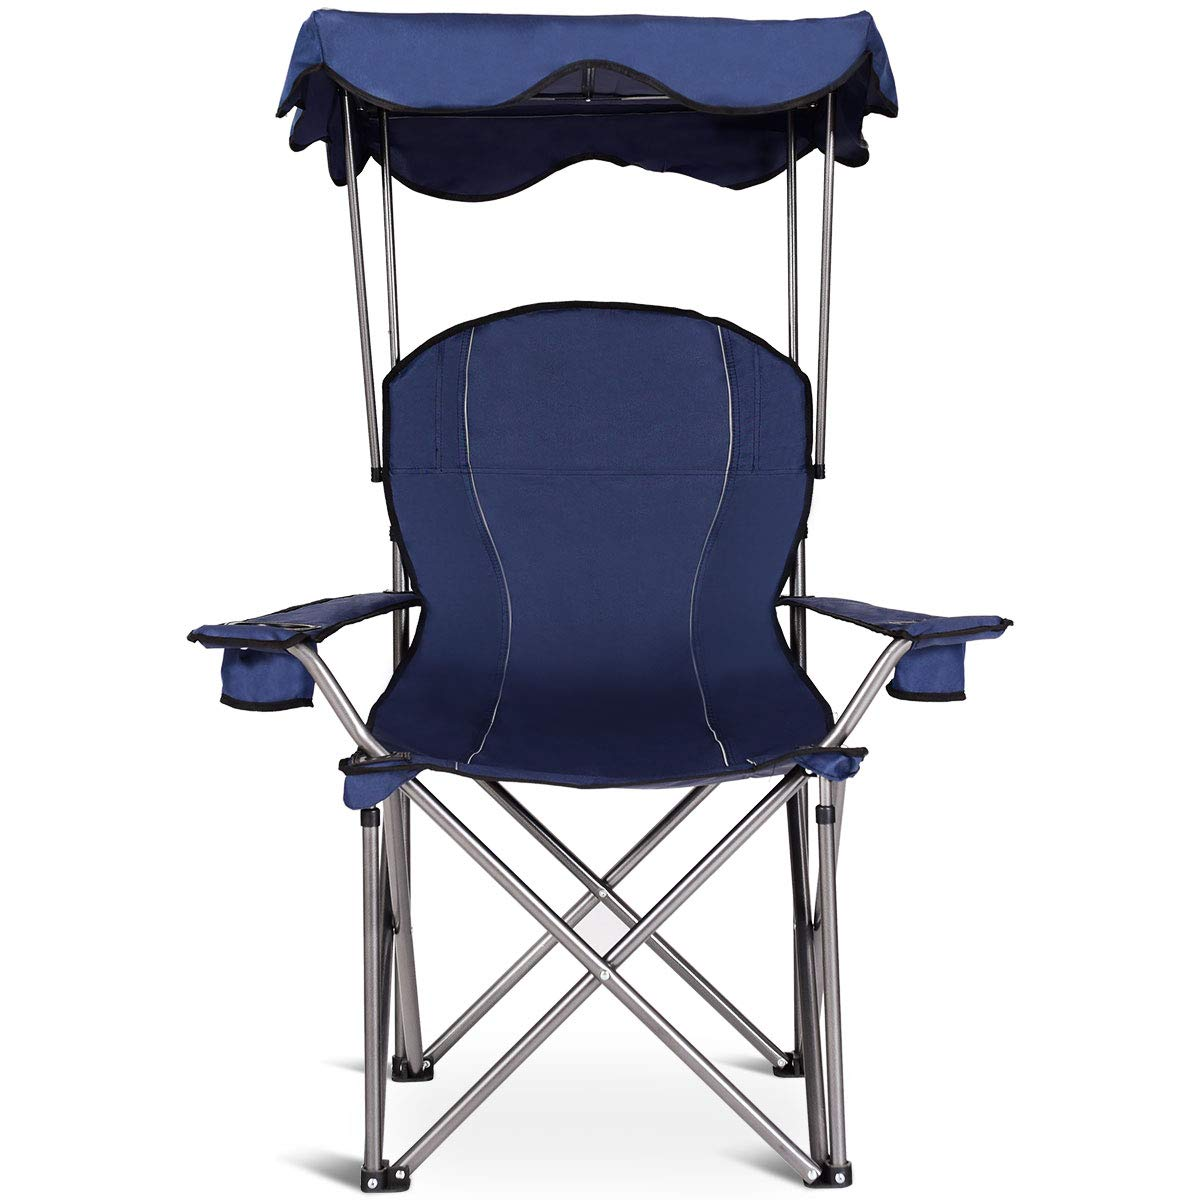 Amazon.com: Goplus - Silla de playa plegable con toldo ...